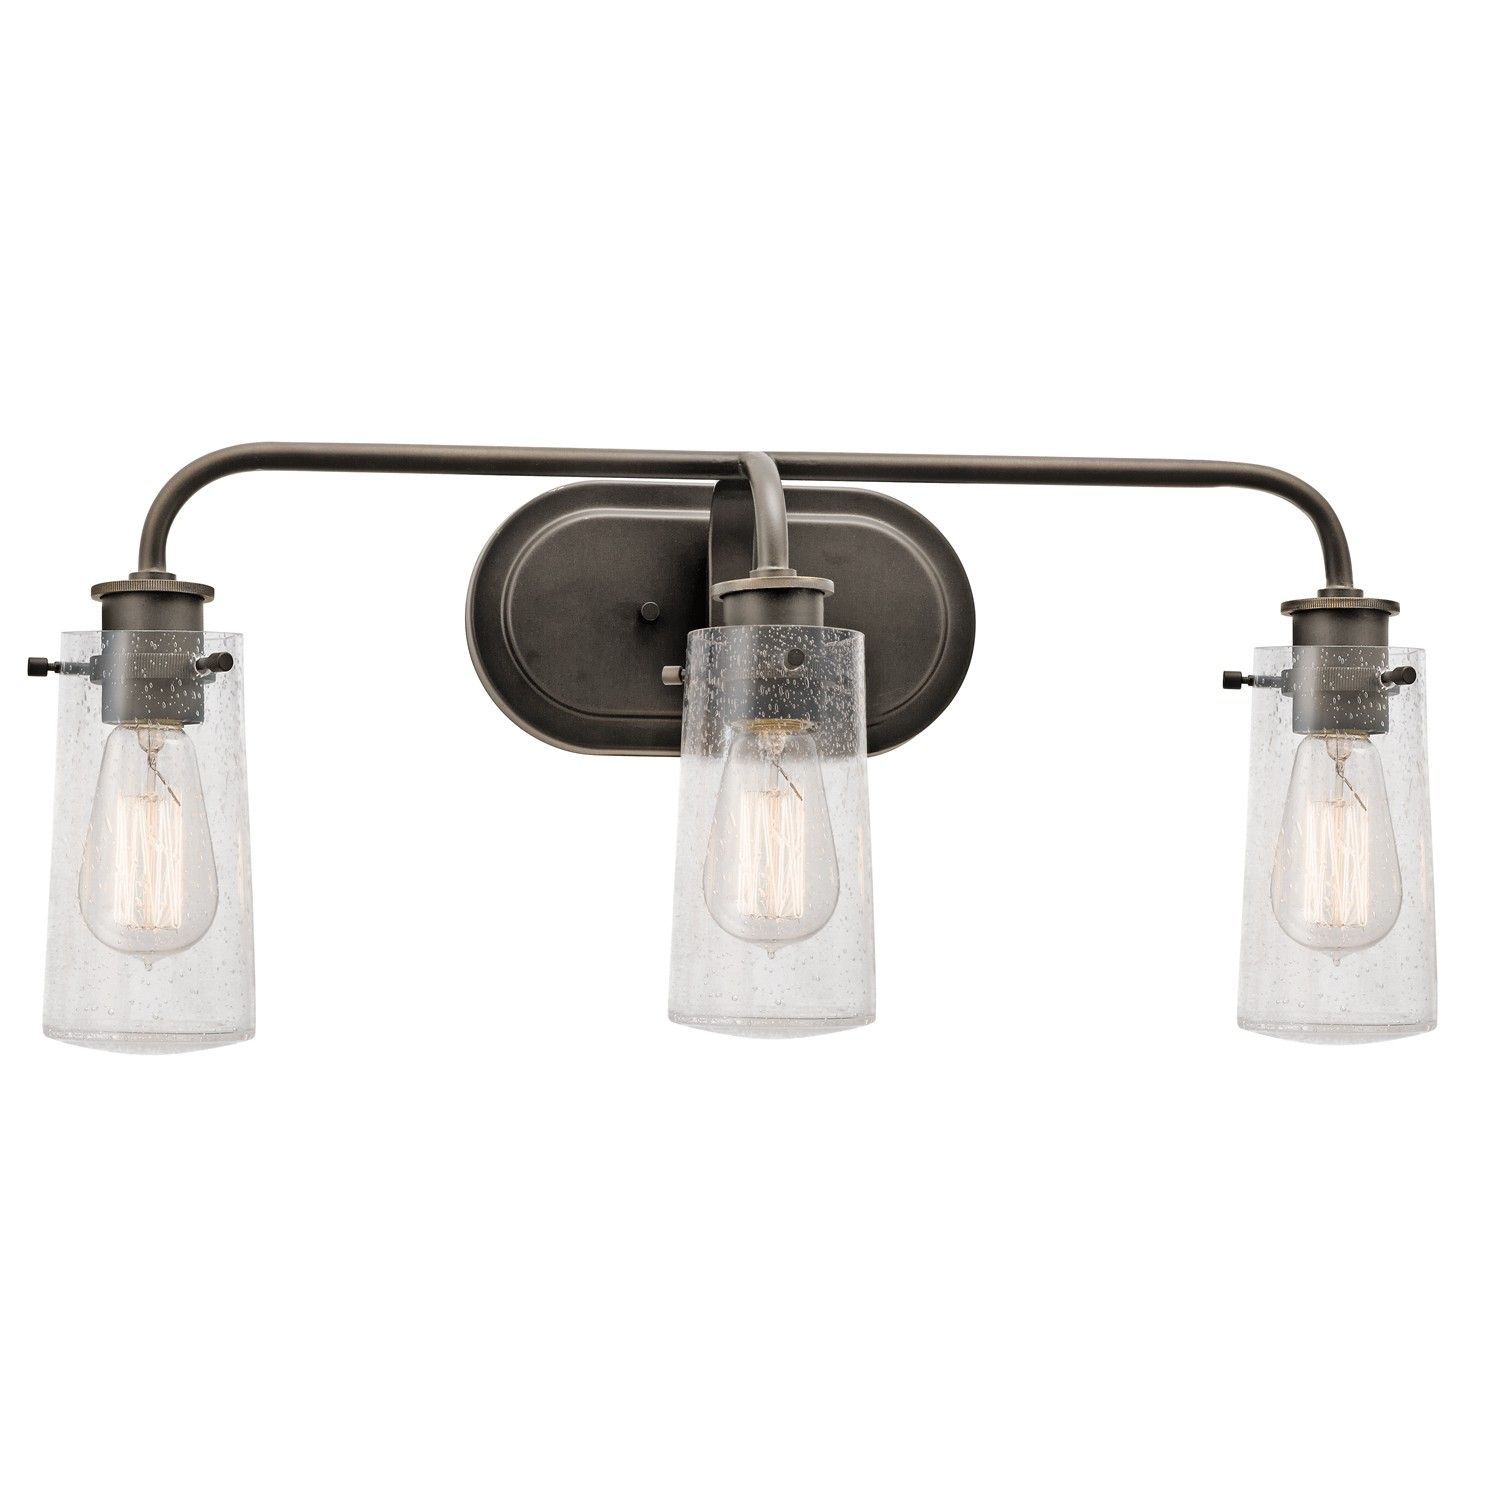 bathroom lighting fixtures. Kichler Braelyn 3 Light Bathroom Fixture In Olde Bronze Lighting Fixtures